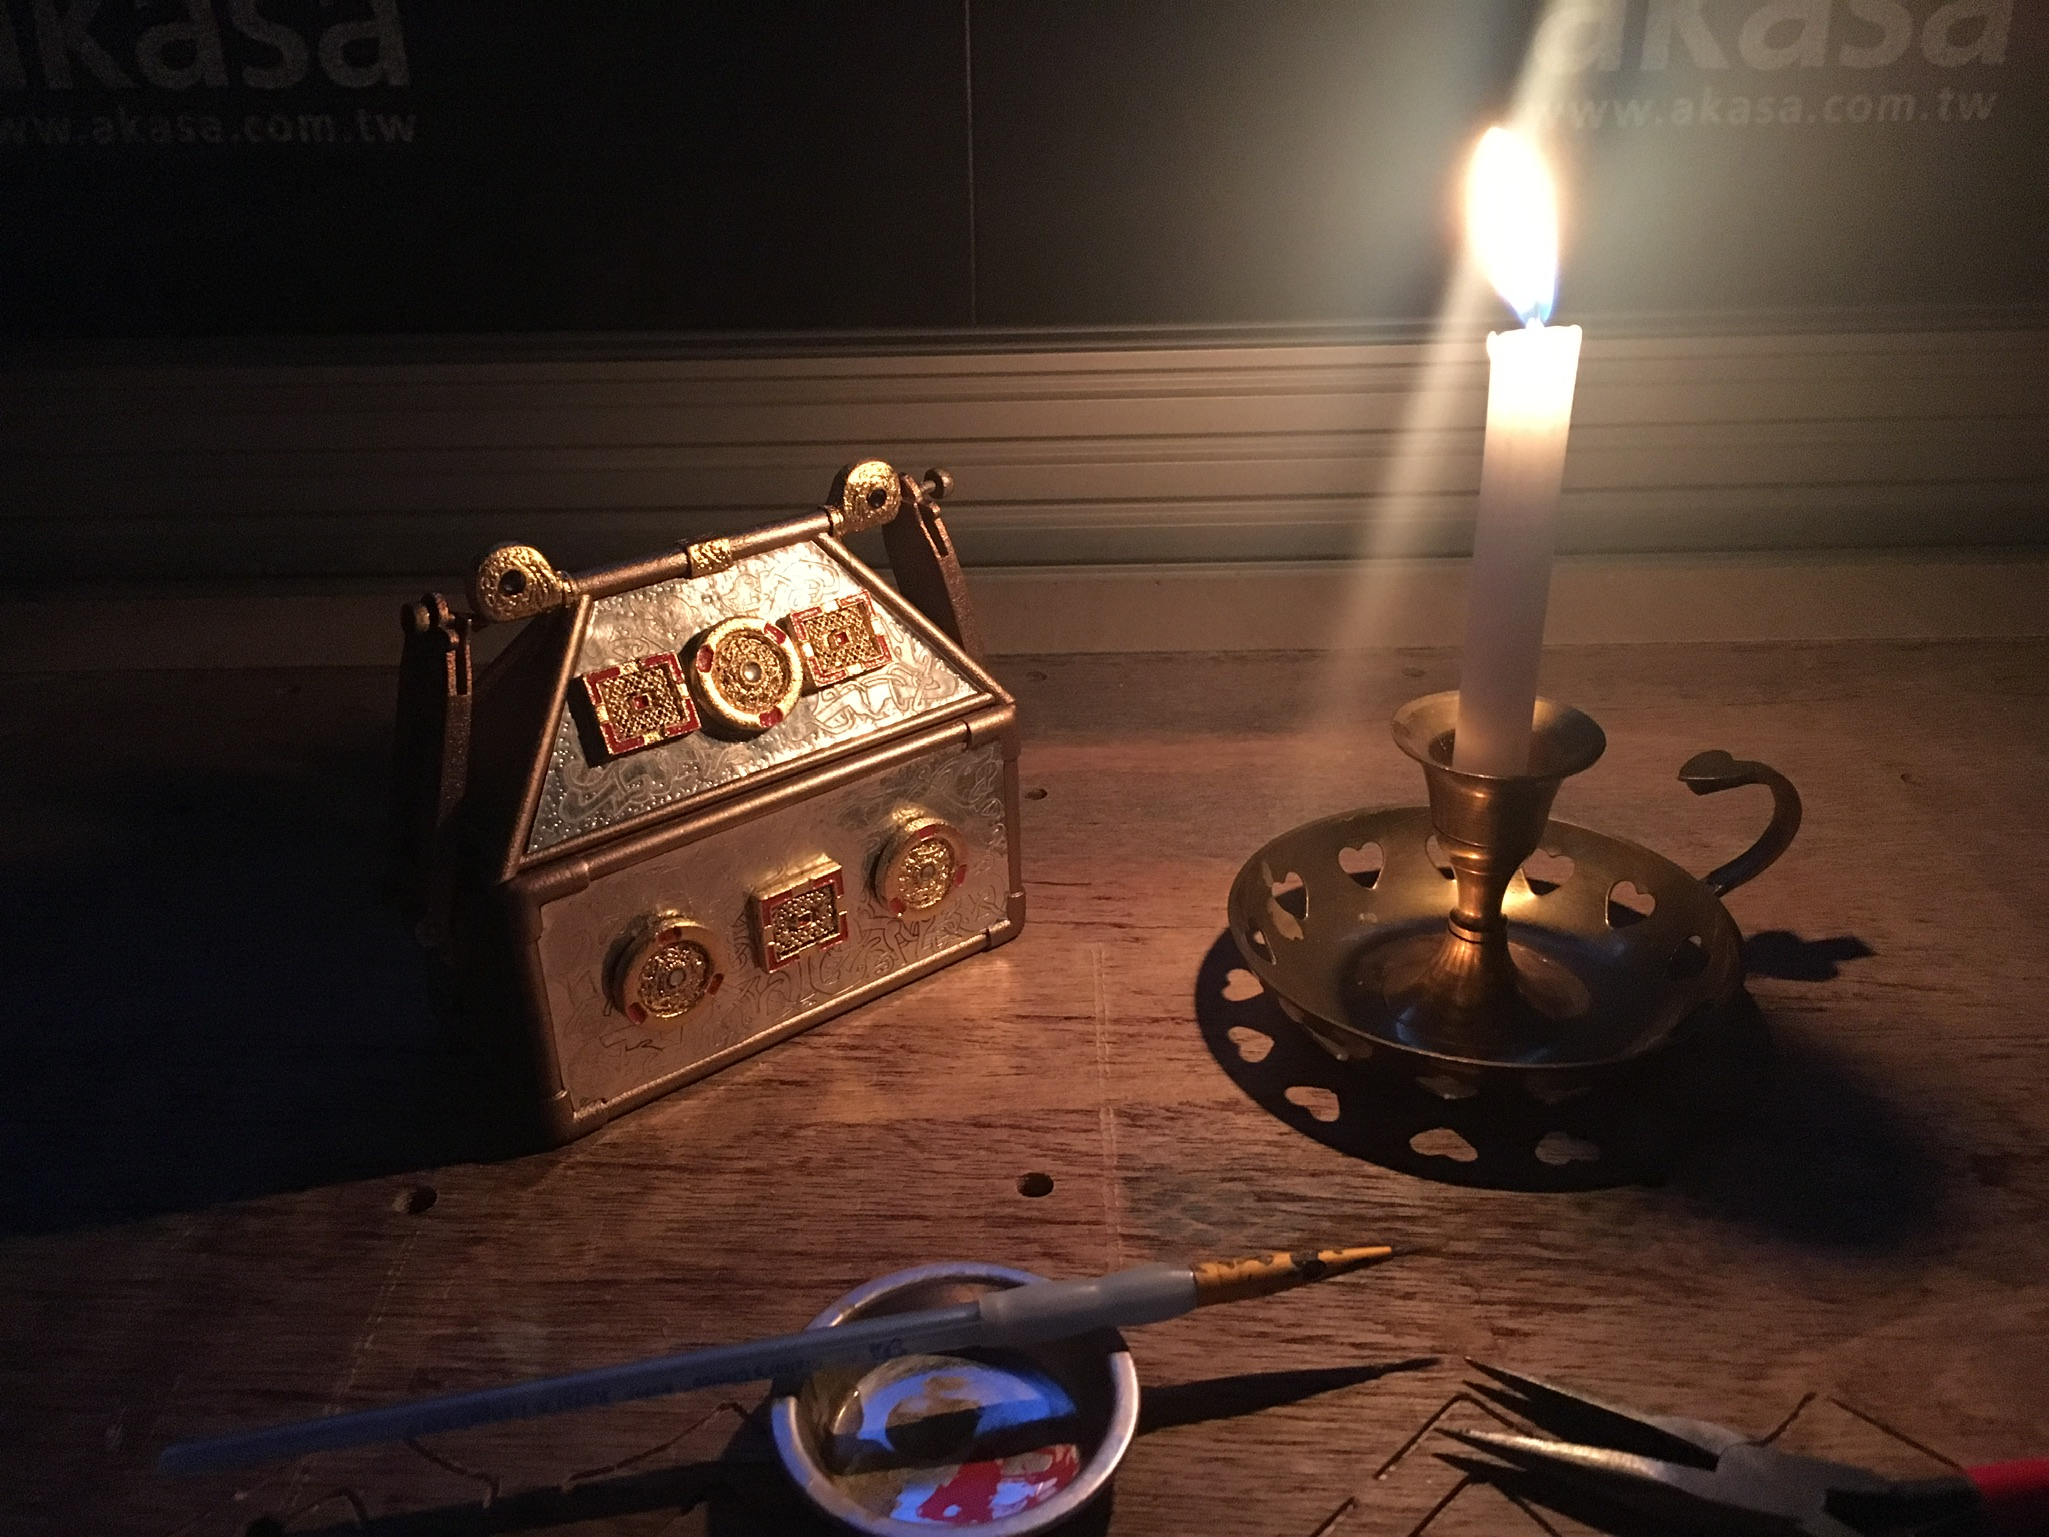 Replica Monymusk Reliquary by candlelight